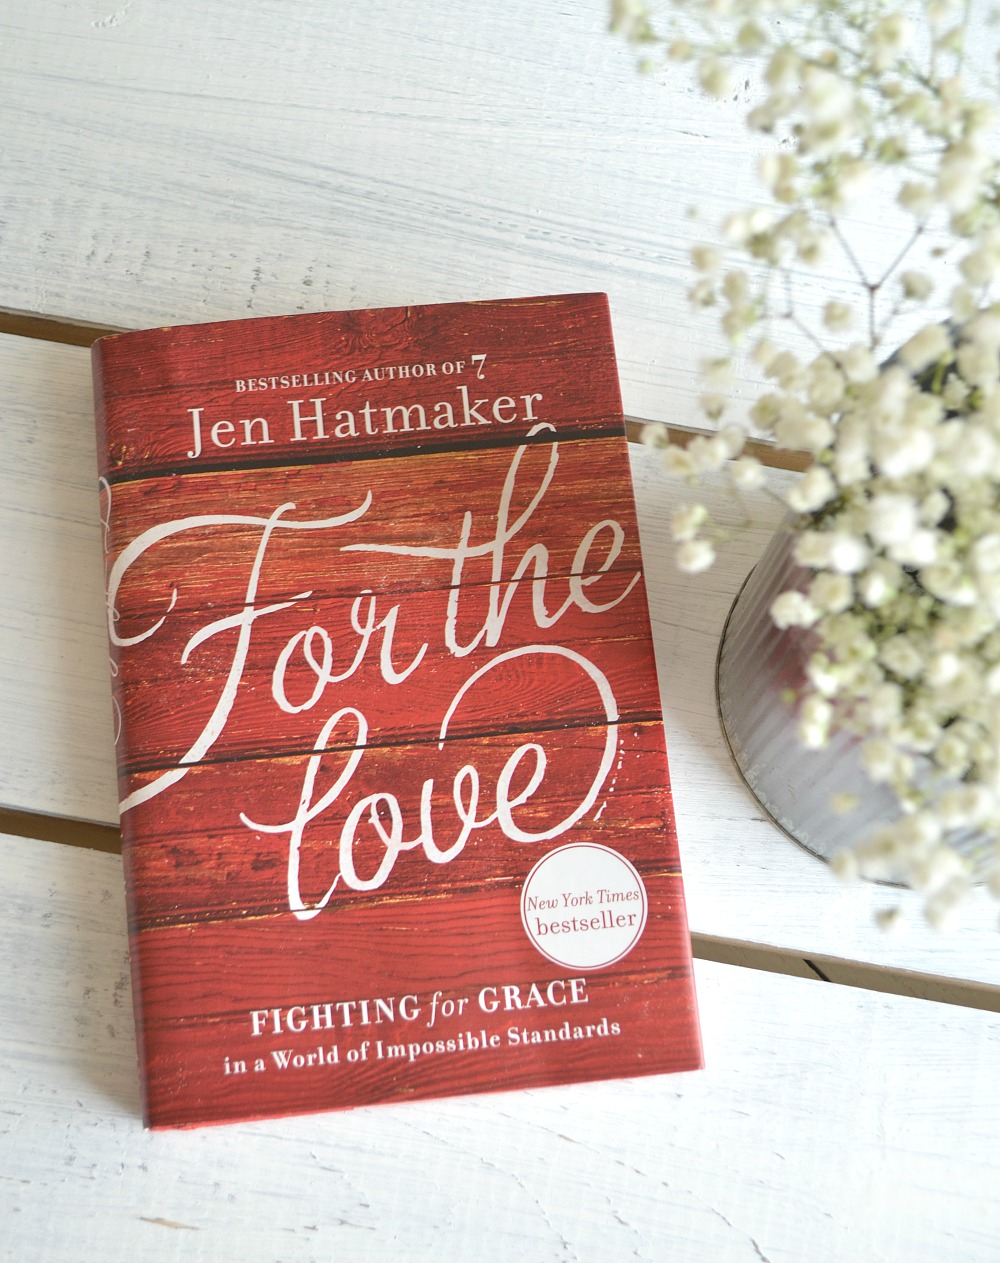 Friday Favorites: For the Love Book by Jen Hatmaker